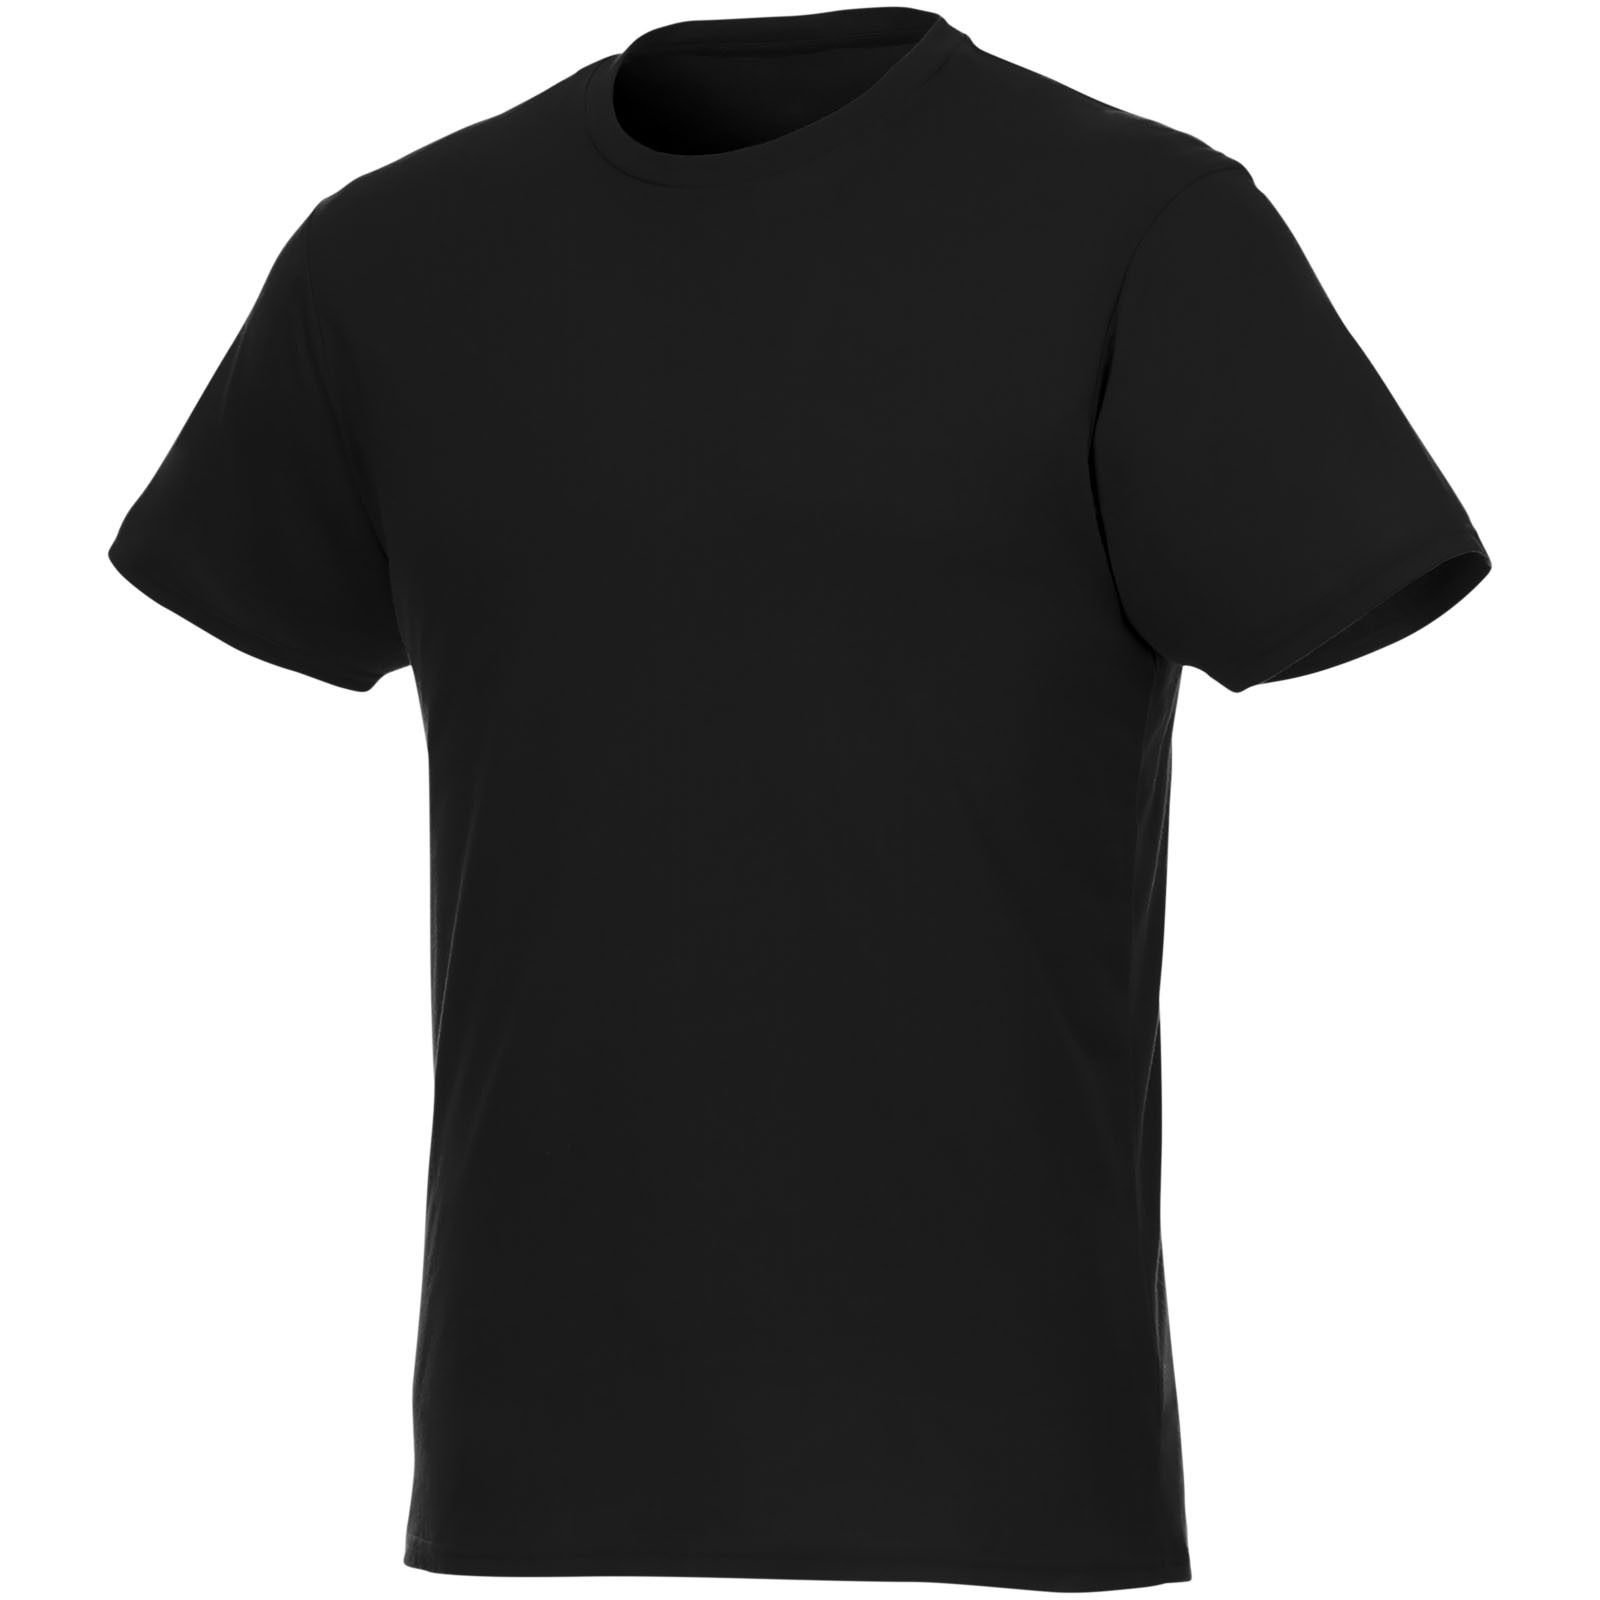 Jade short sleeve men's GRS recycled T-shirt - Solid Black / XL